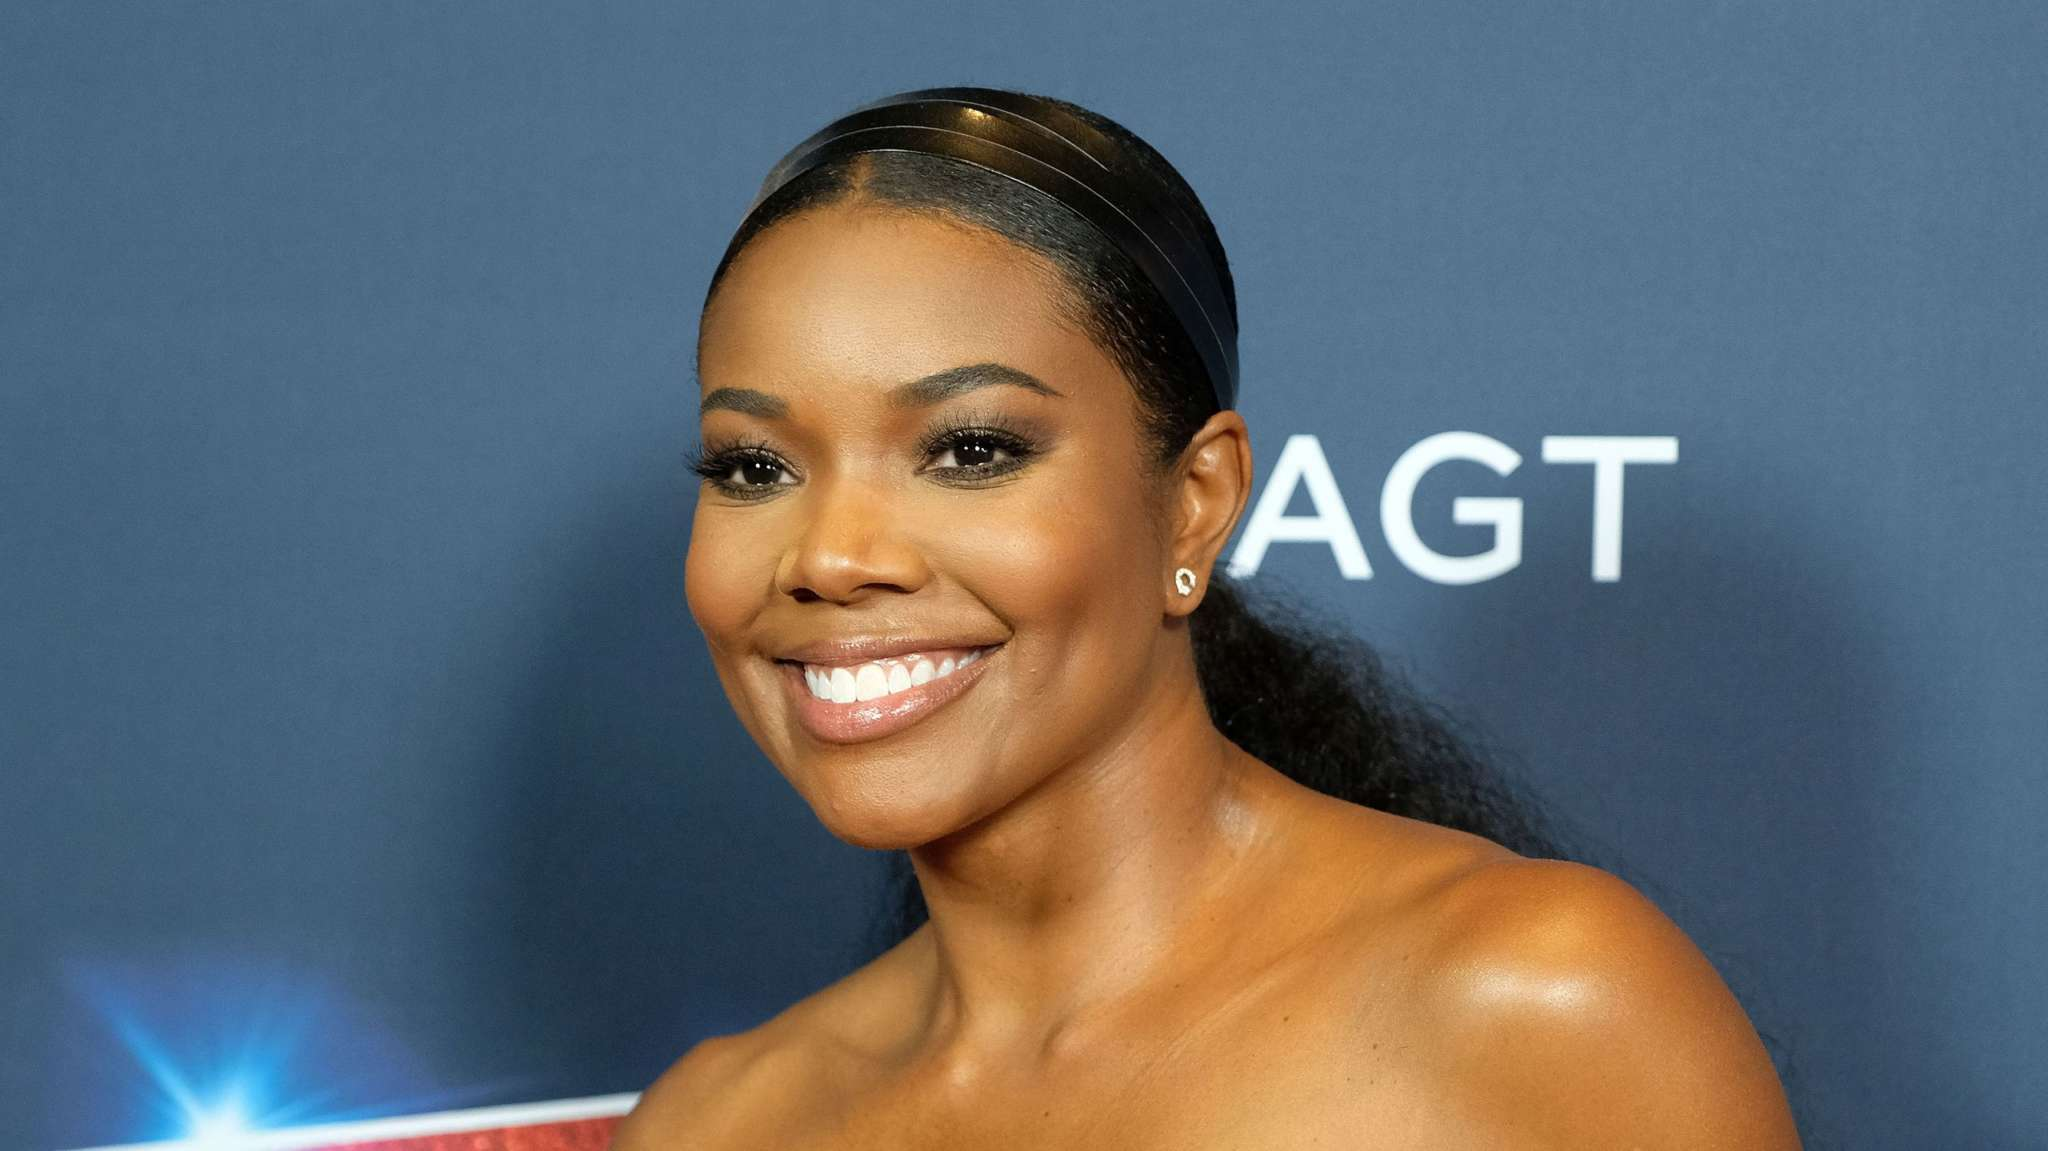 Gabrielle Union Shares Joyful Video On Social Media – See It Here